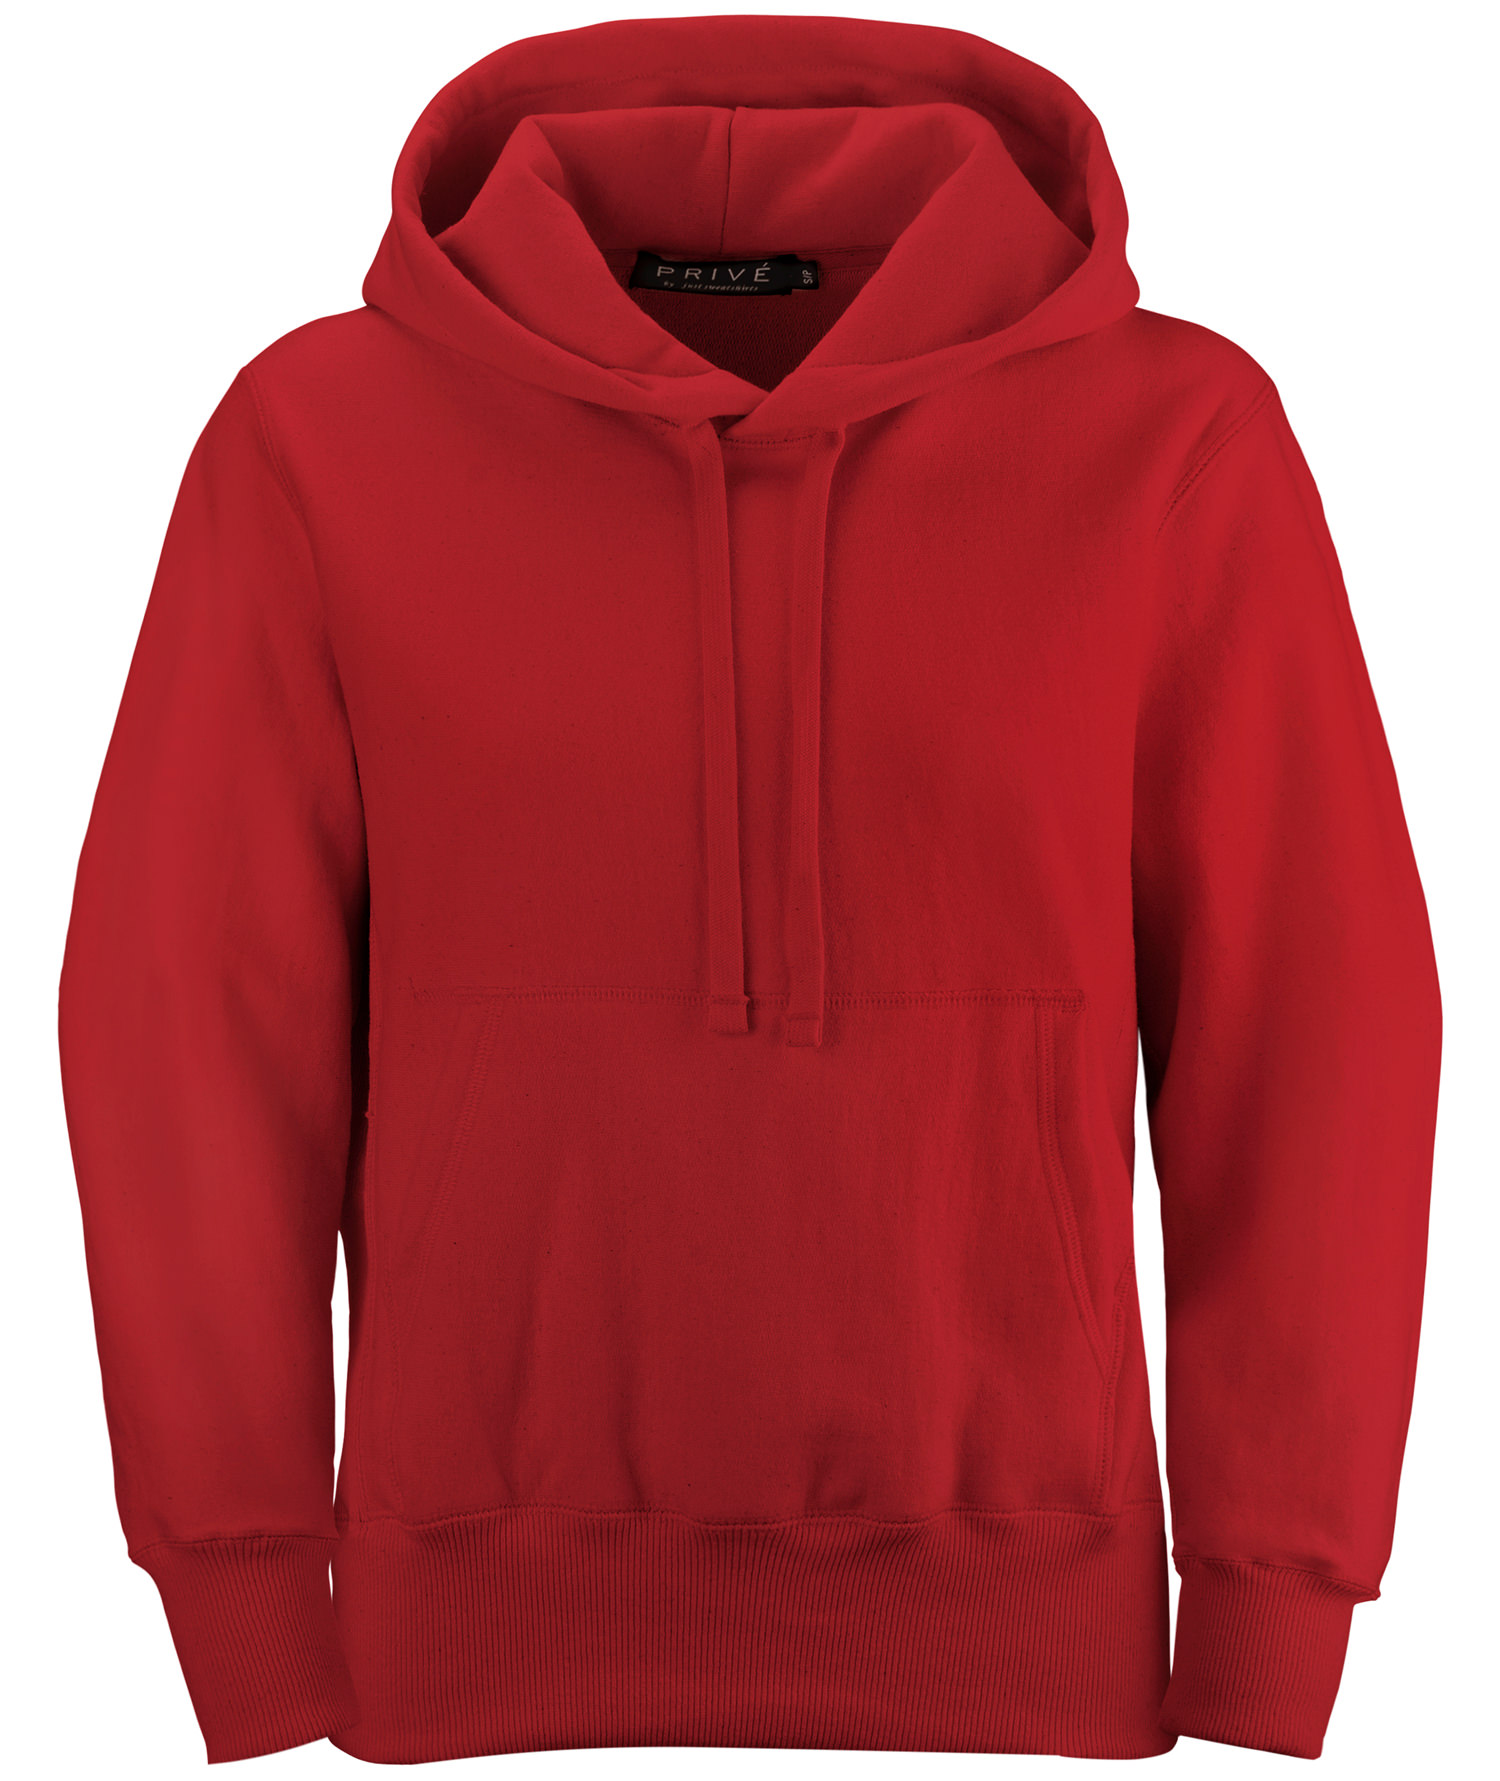 PRIVÉ Hoodie Red with Side Rib 100% Cotton